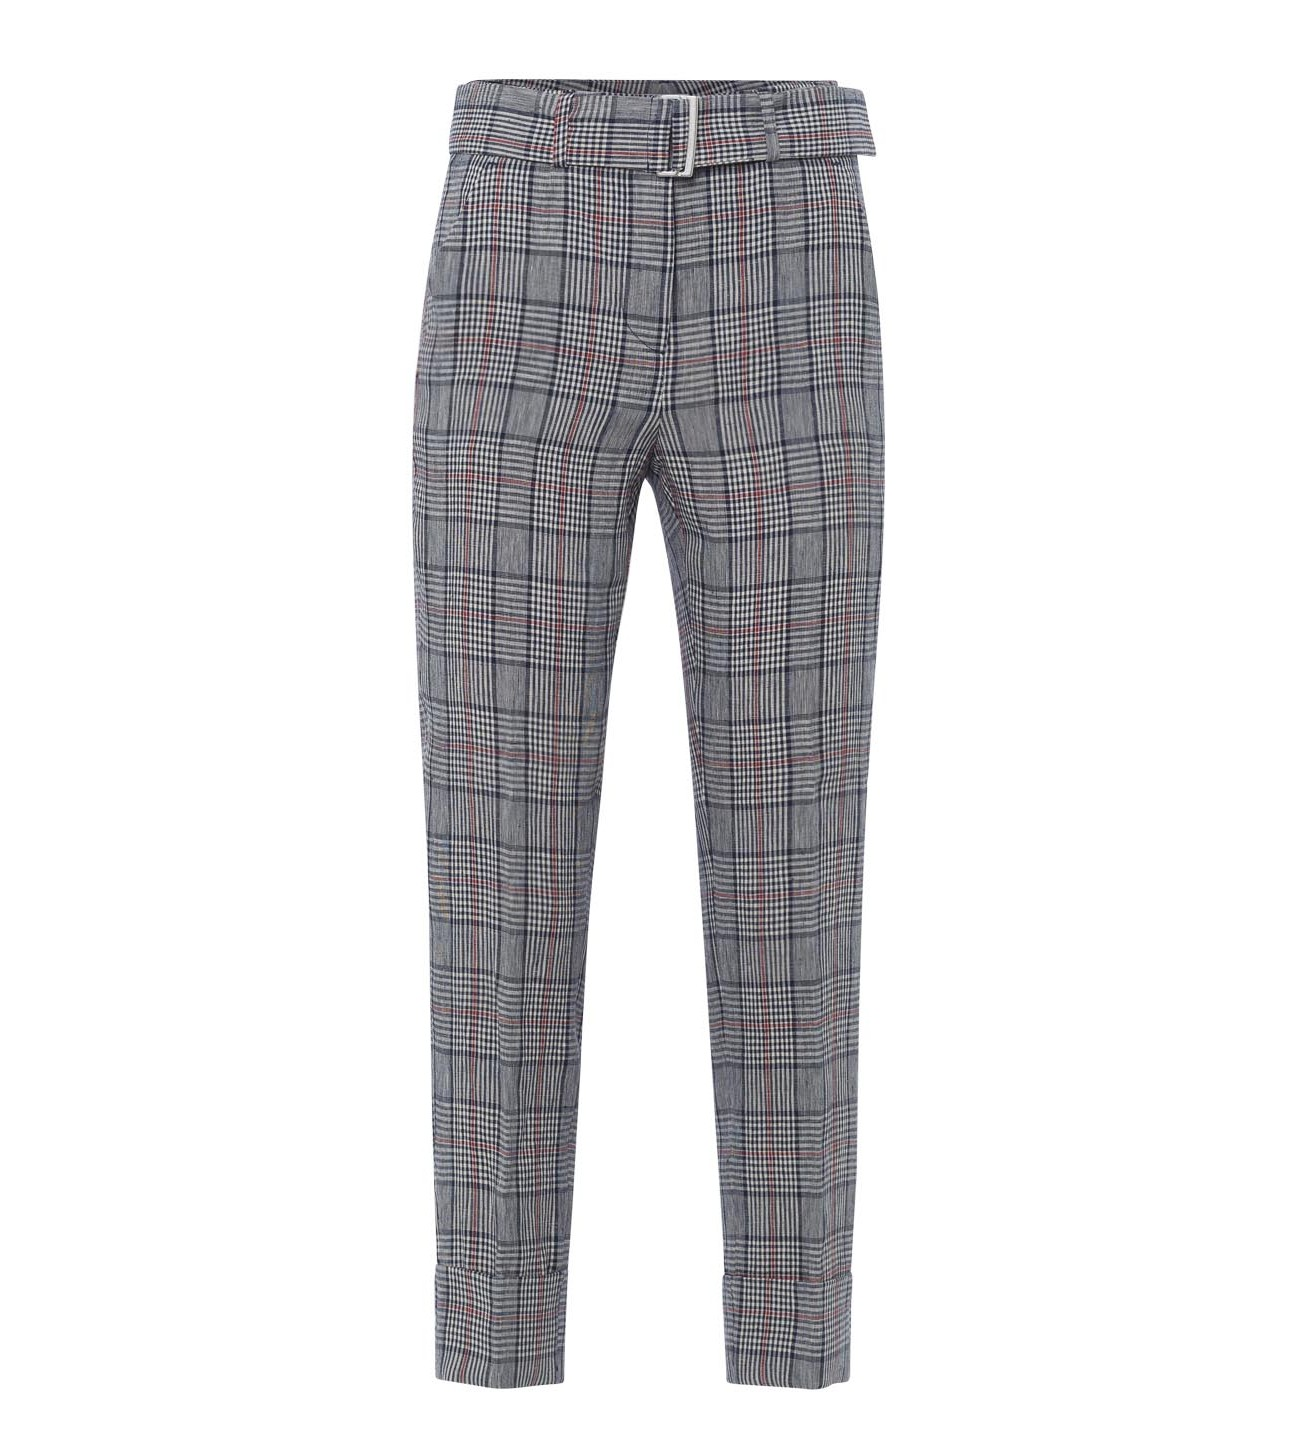 PESERICO_CHECKED_LINEN_TROUSERS_MARIONA_FASHION_CLOTHING_WOMAN_SHOP_ONLINE_P04161H00A